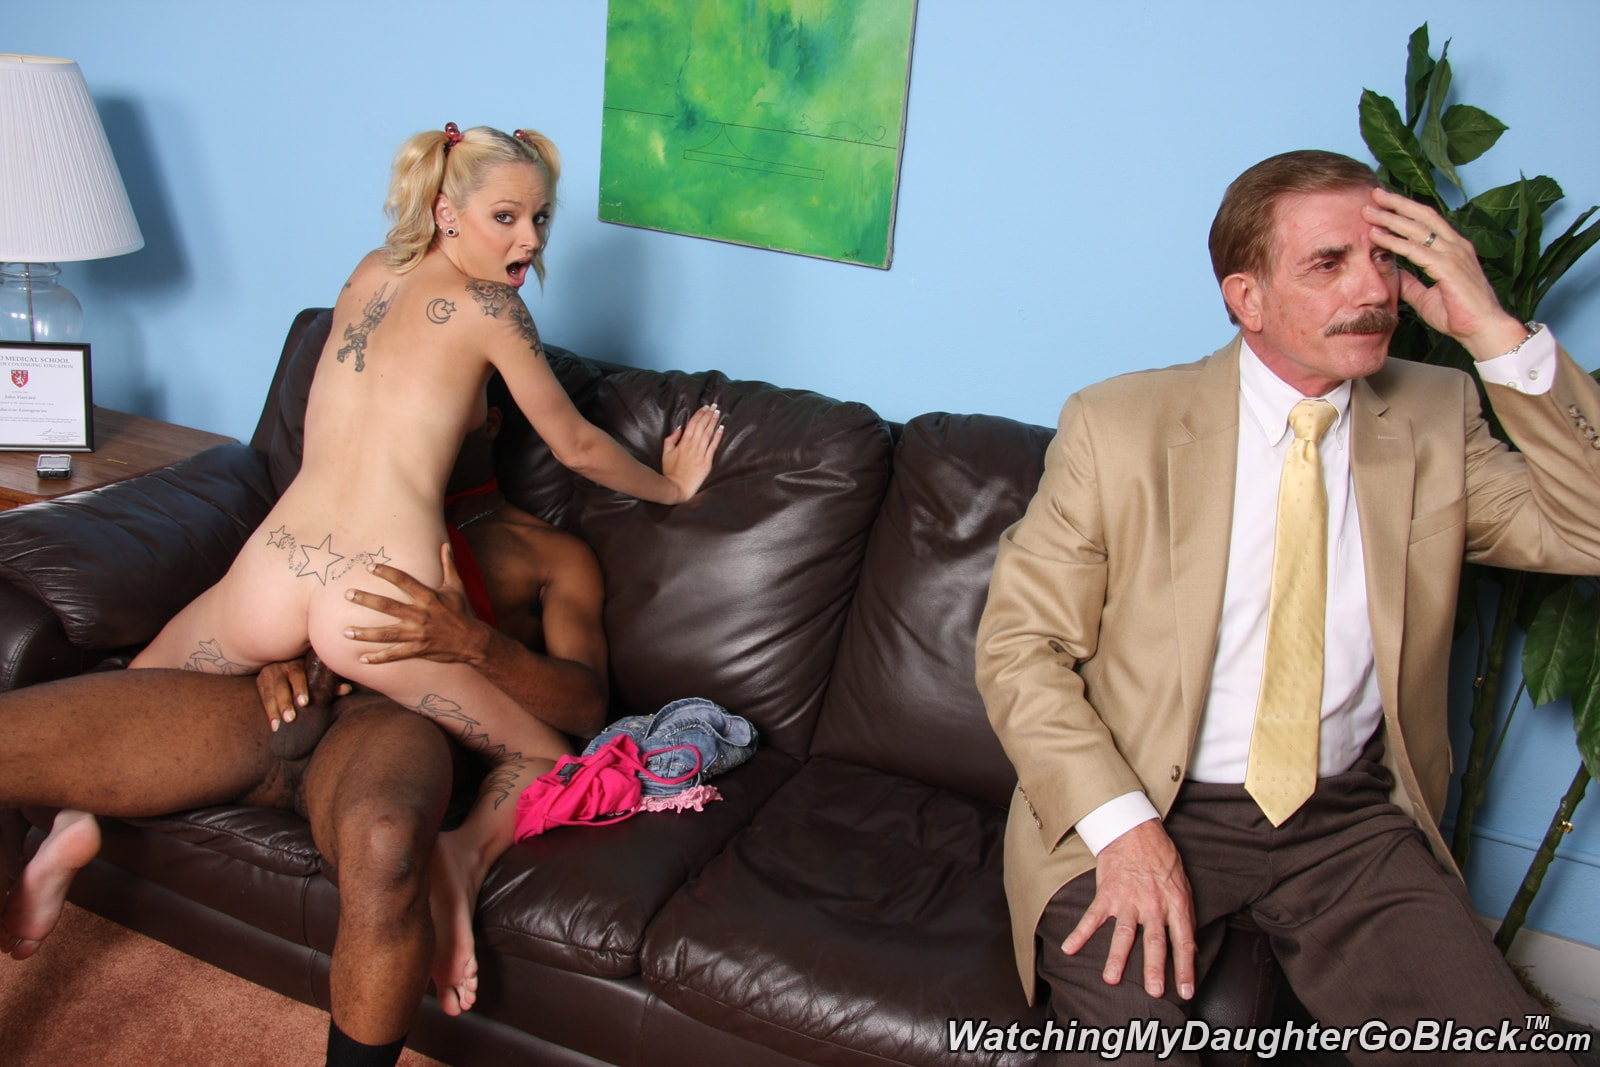 Dogfart 'Faye Runaway - Watching My Daughter Go Black' starring Faye Runaway (photo 17)